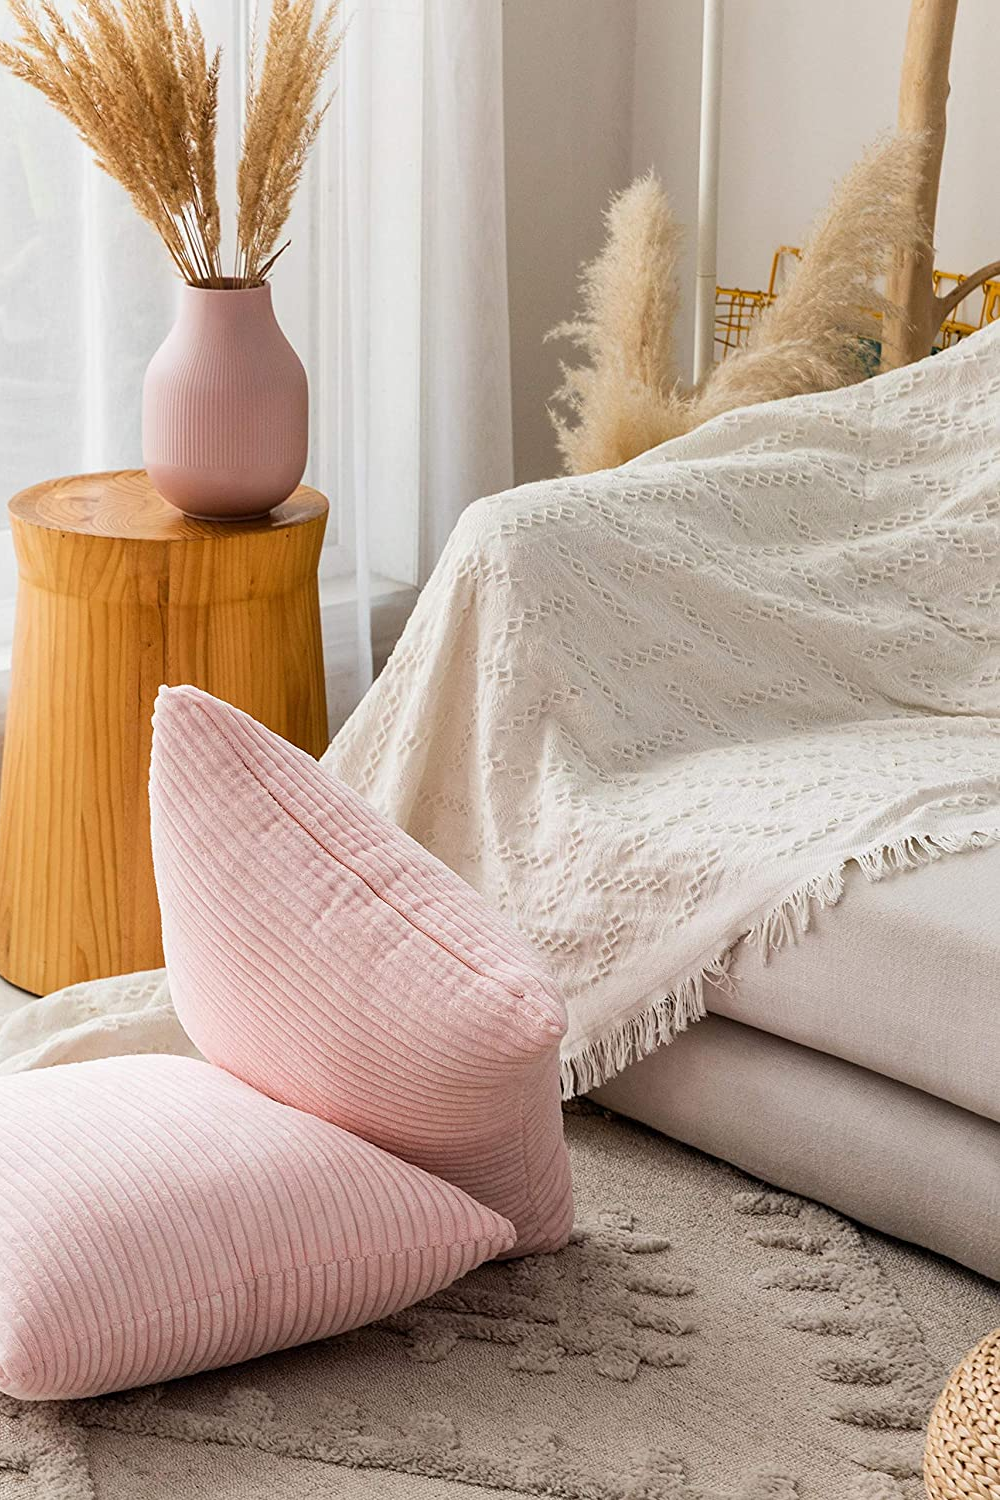 Blush Pink Velvet Throw Pillows In 2020 Couch Throw Pillows Pink Throw Pillows Velvet Throw Pillows